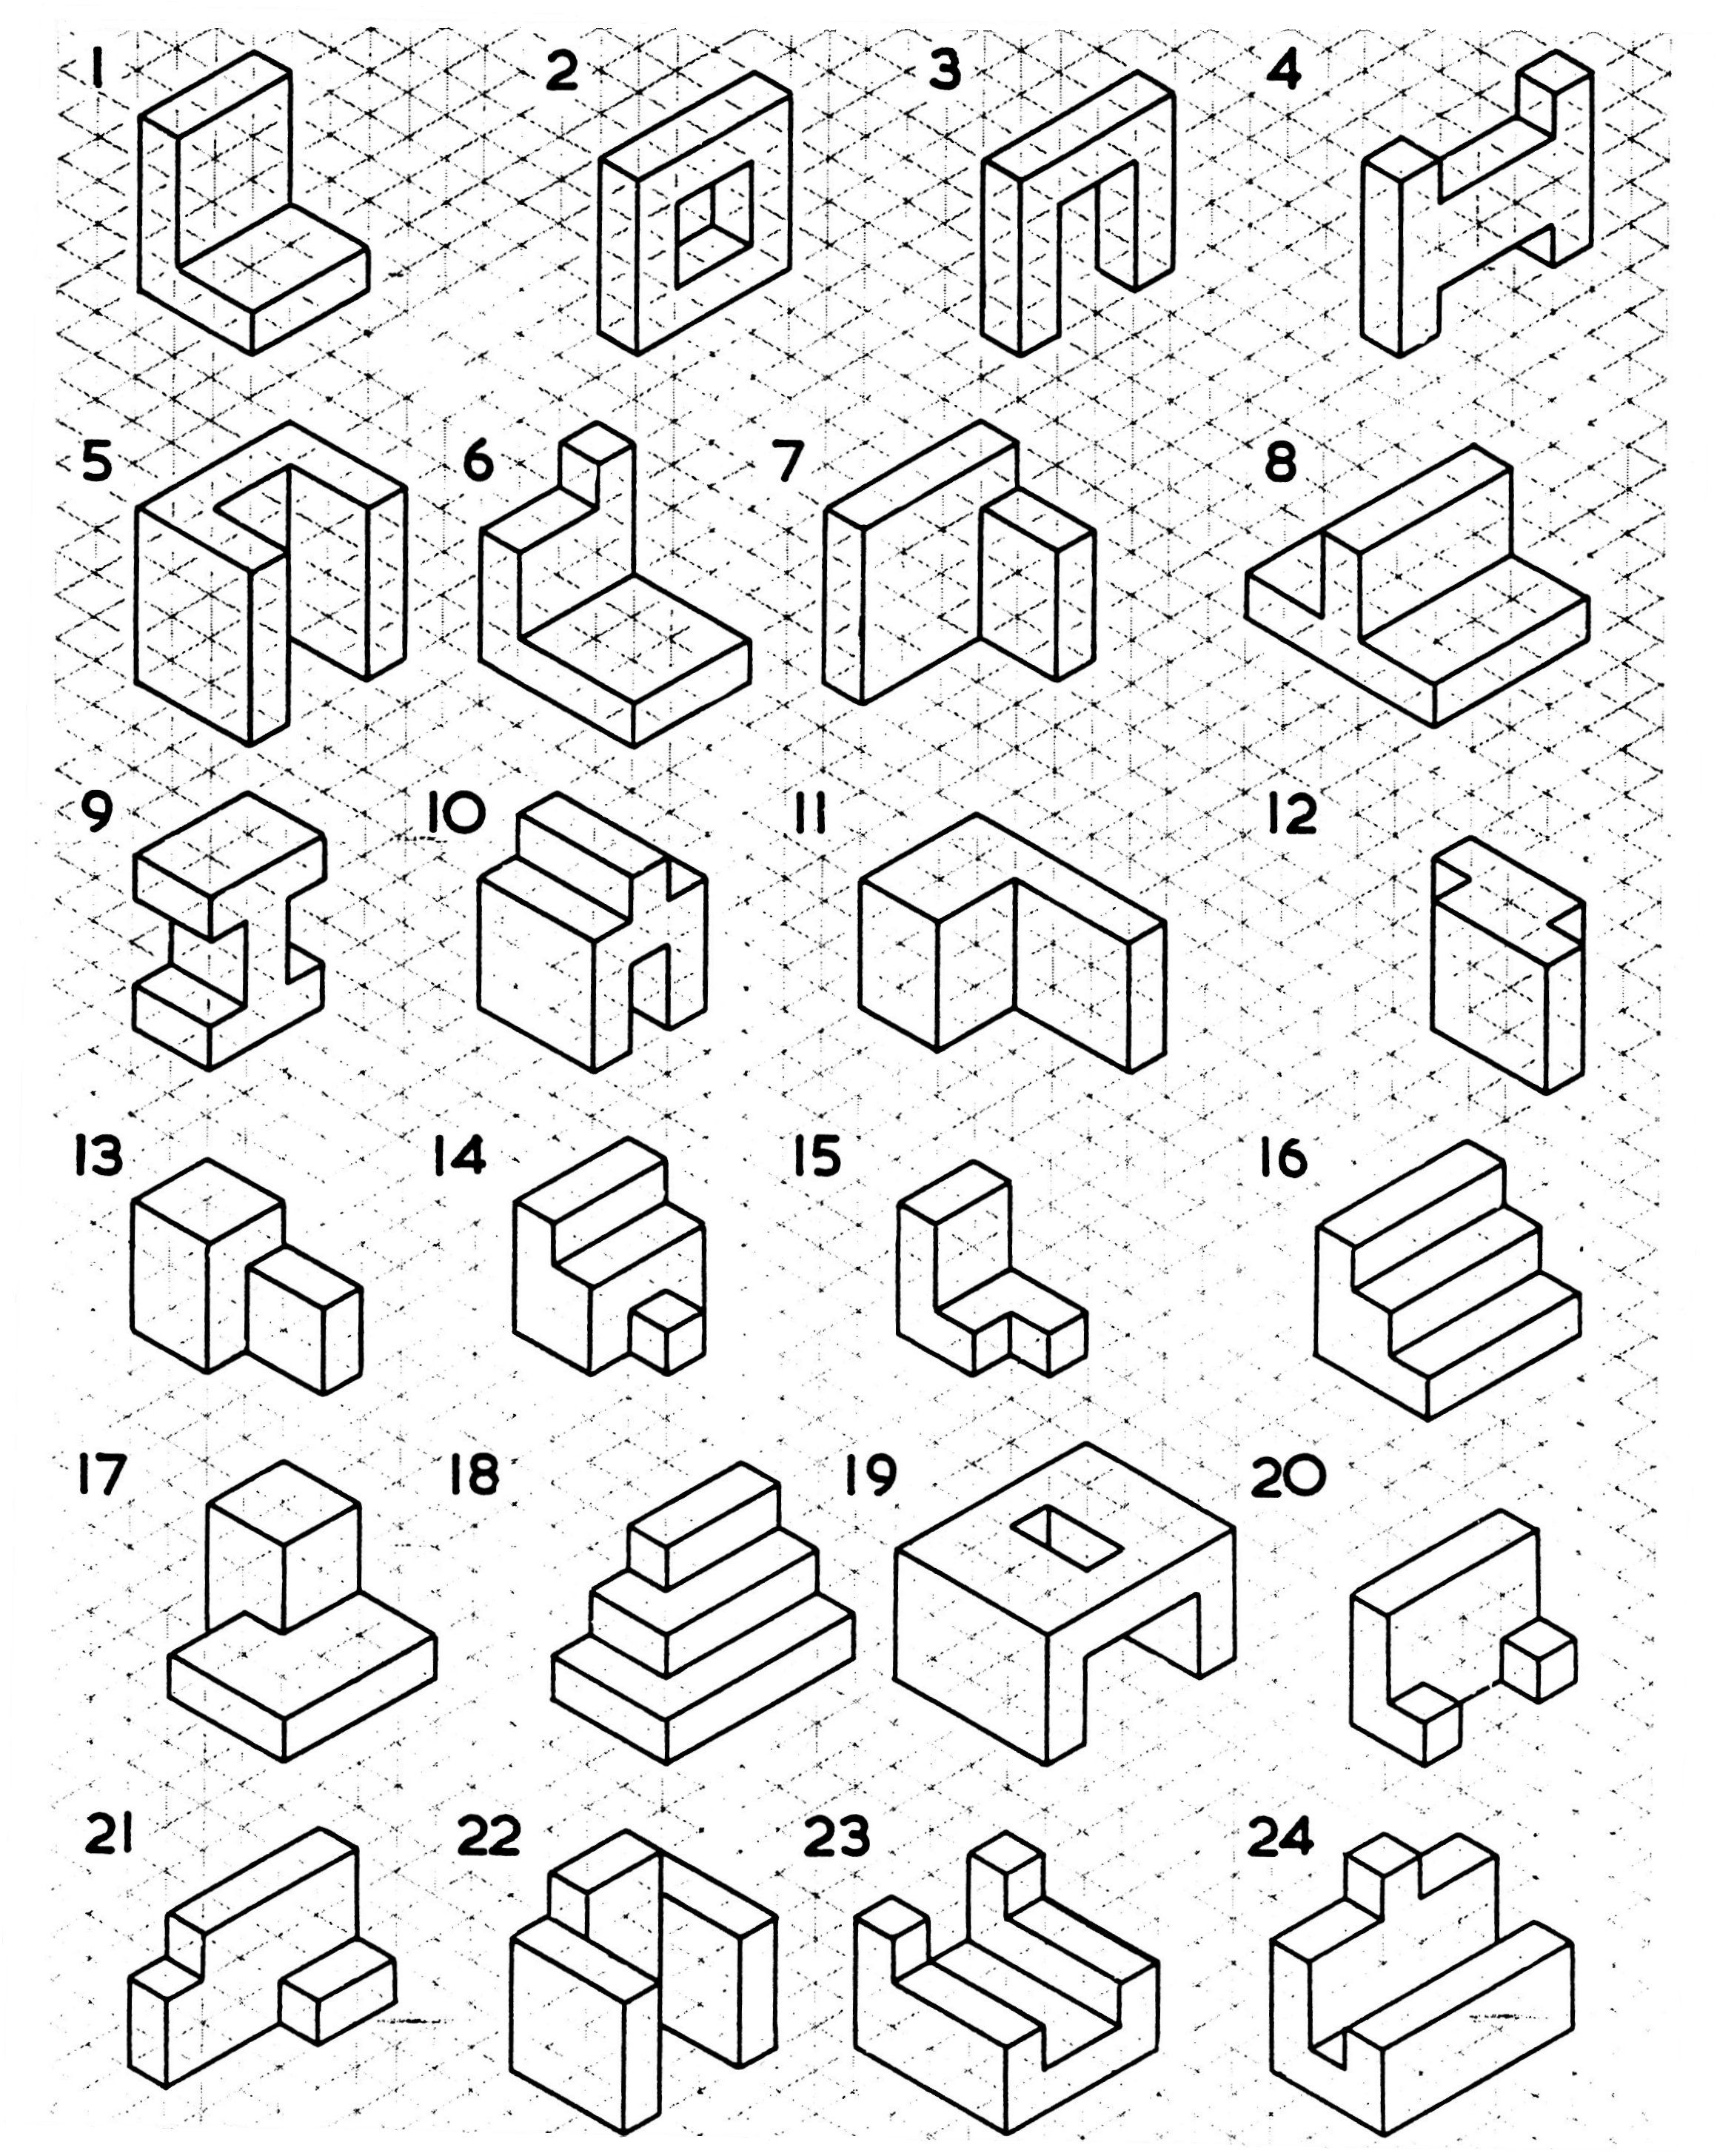 small resolution of isometric_worksheet1.jpg (2319×2912)   Isometric drawing